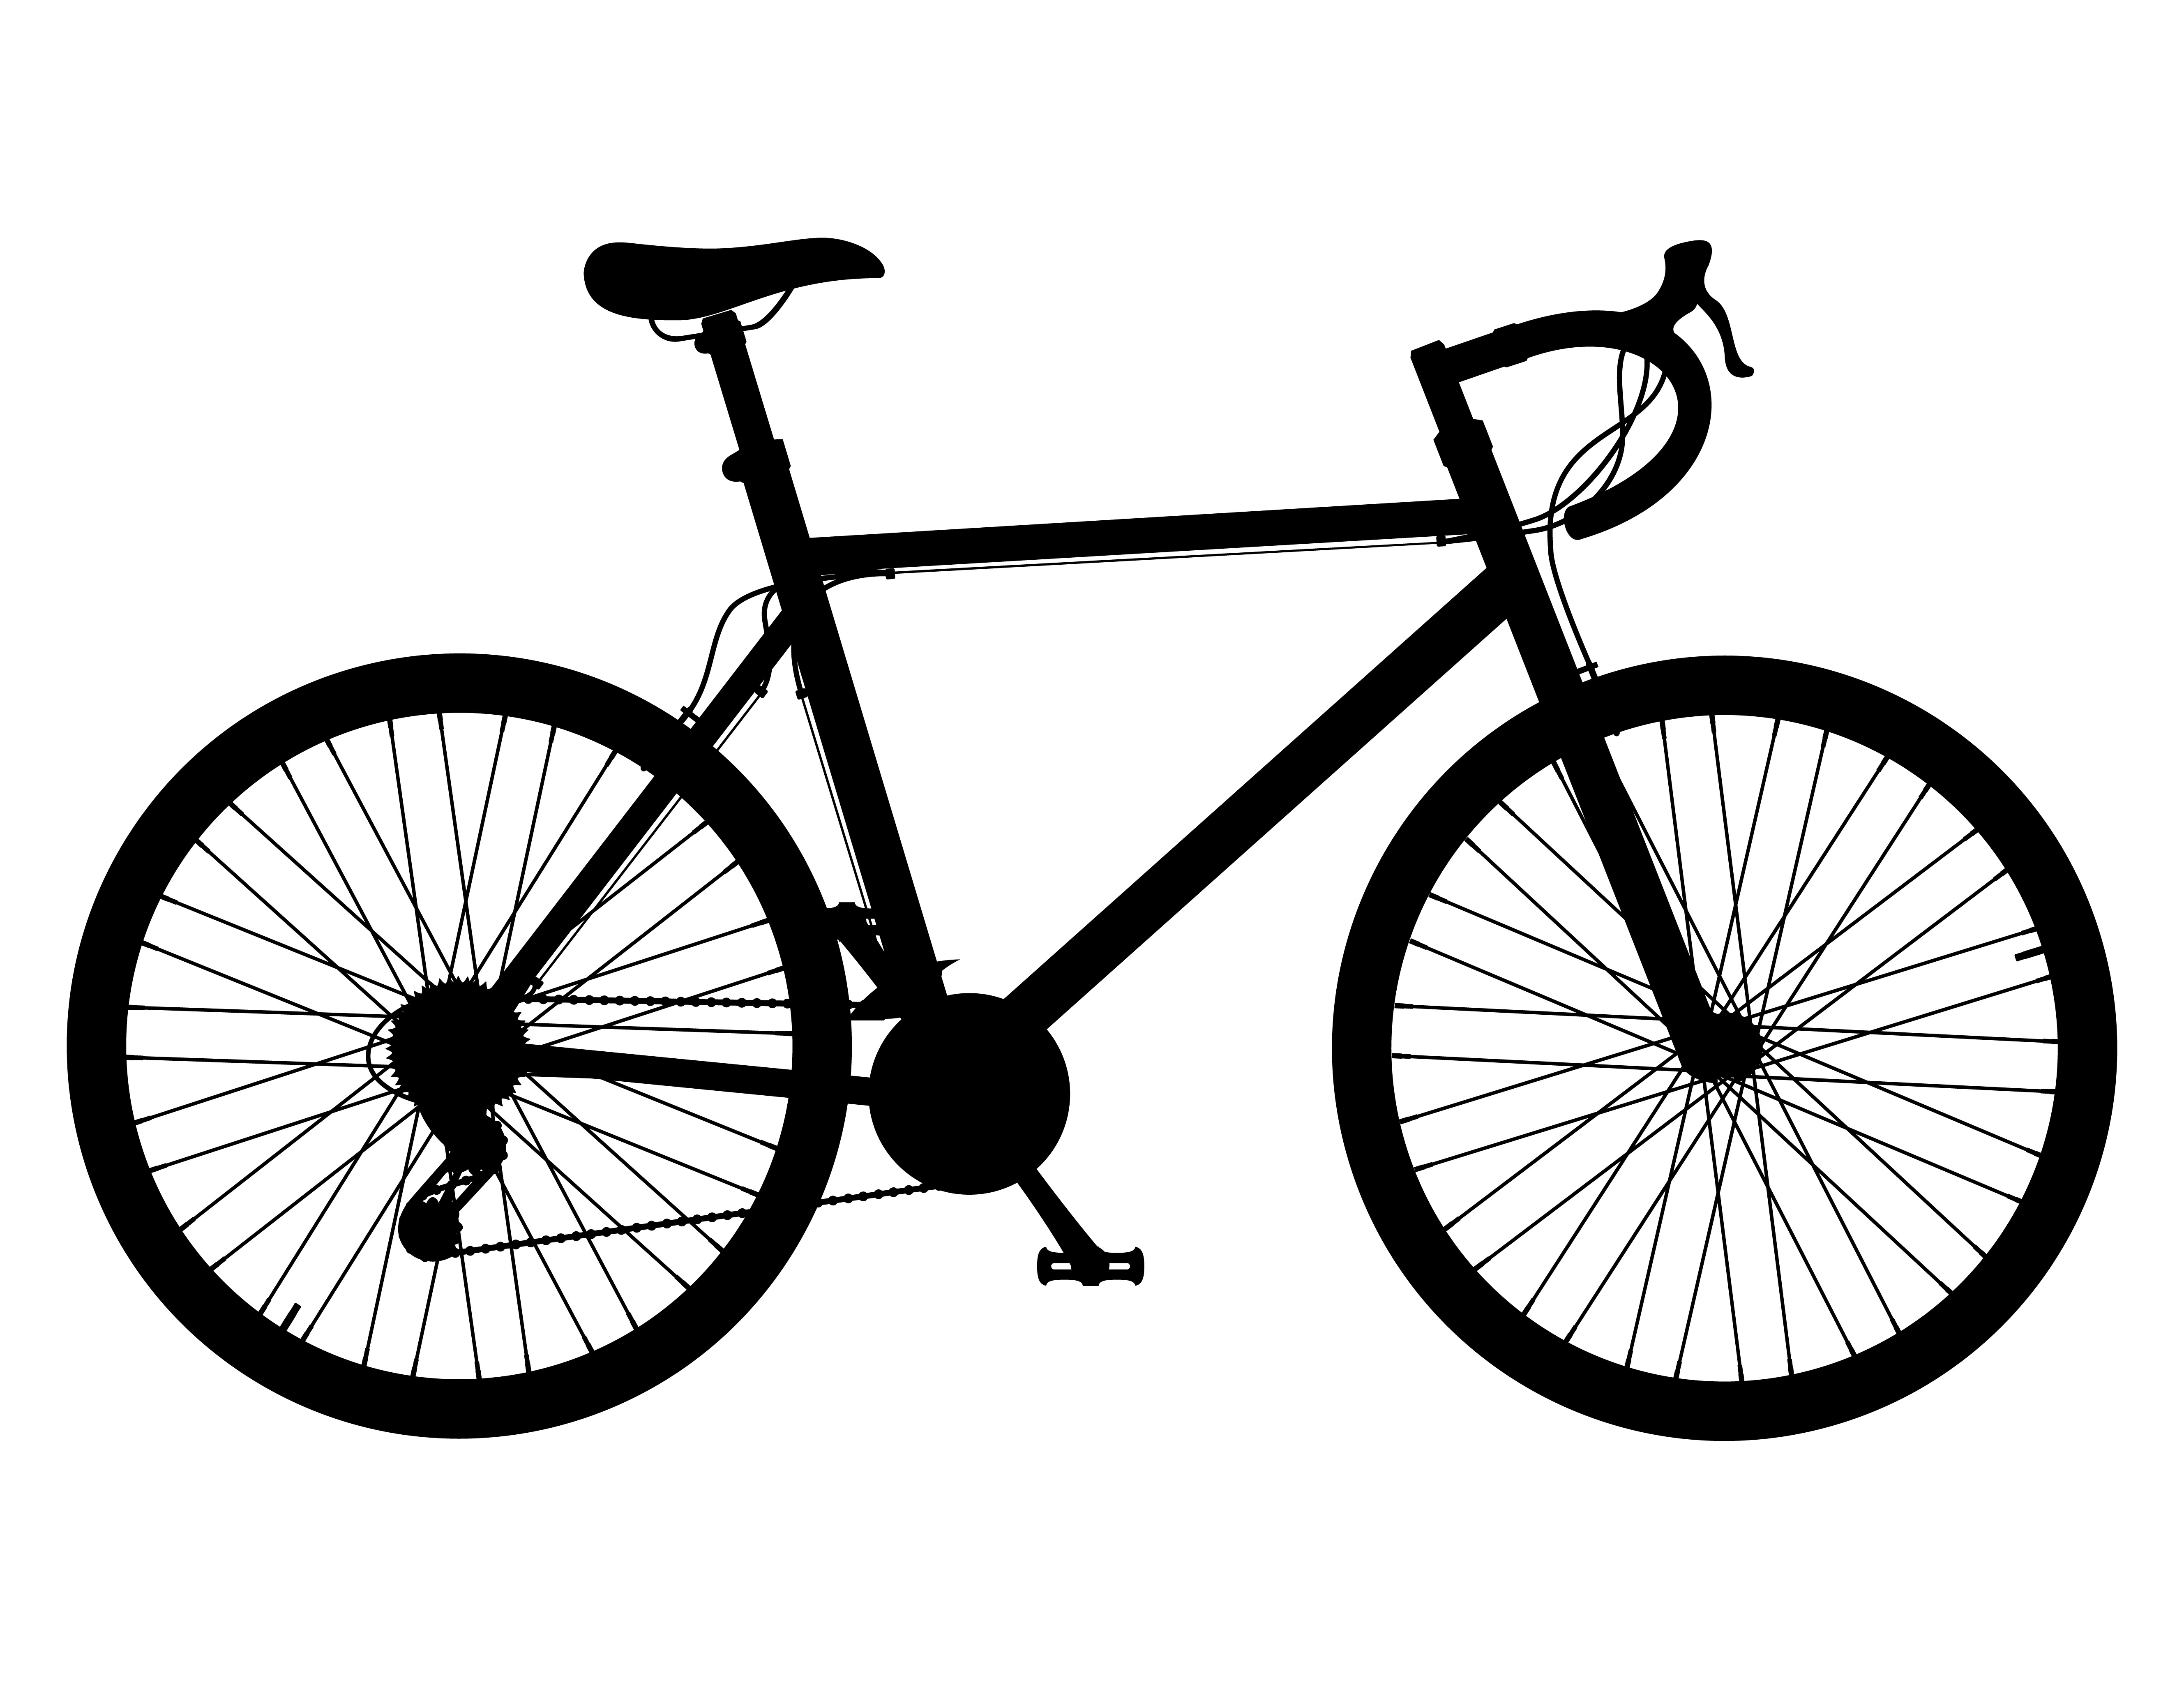 Road Bike With Gear Shifting Black Silhouette Vector